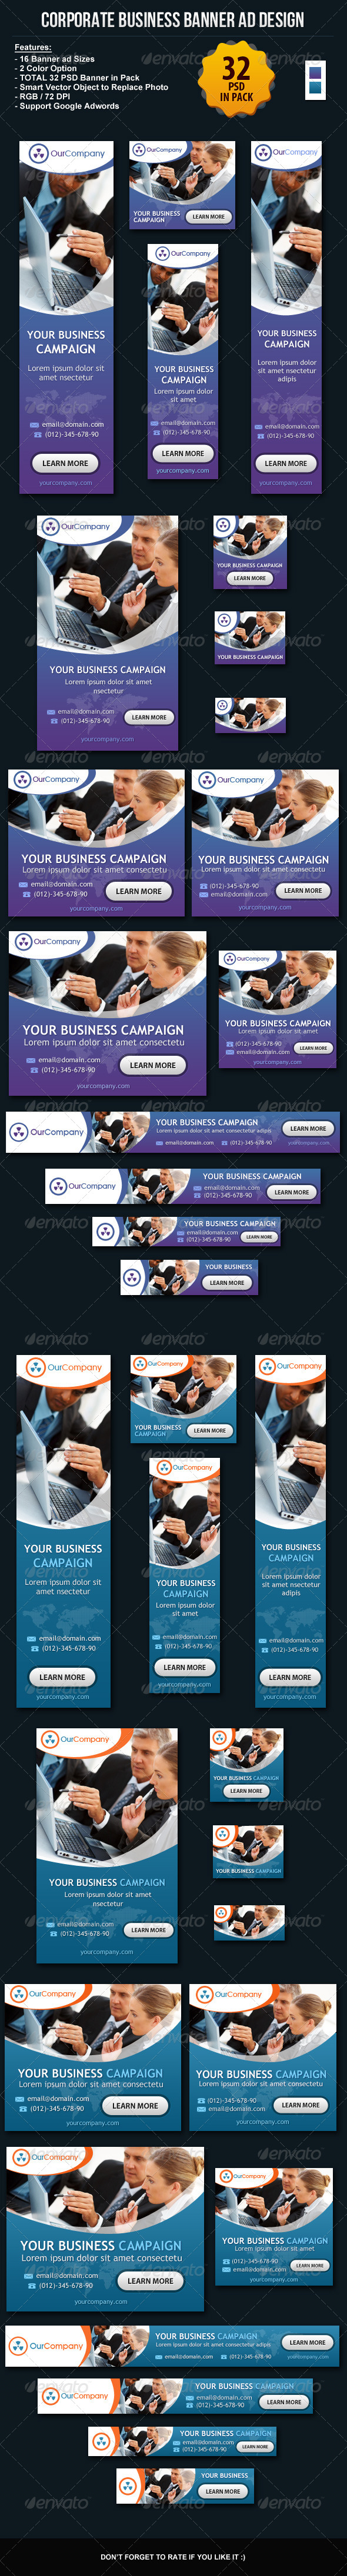 GraphicRiver Corporate Business Banner ad Design Set 6117582